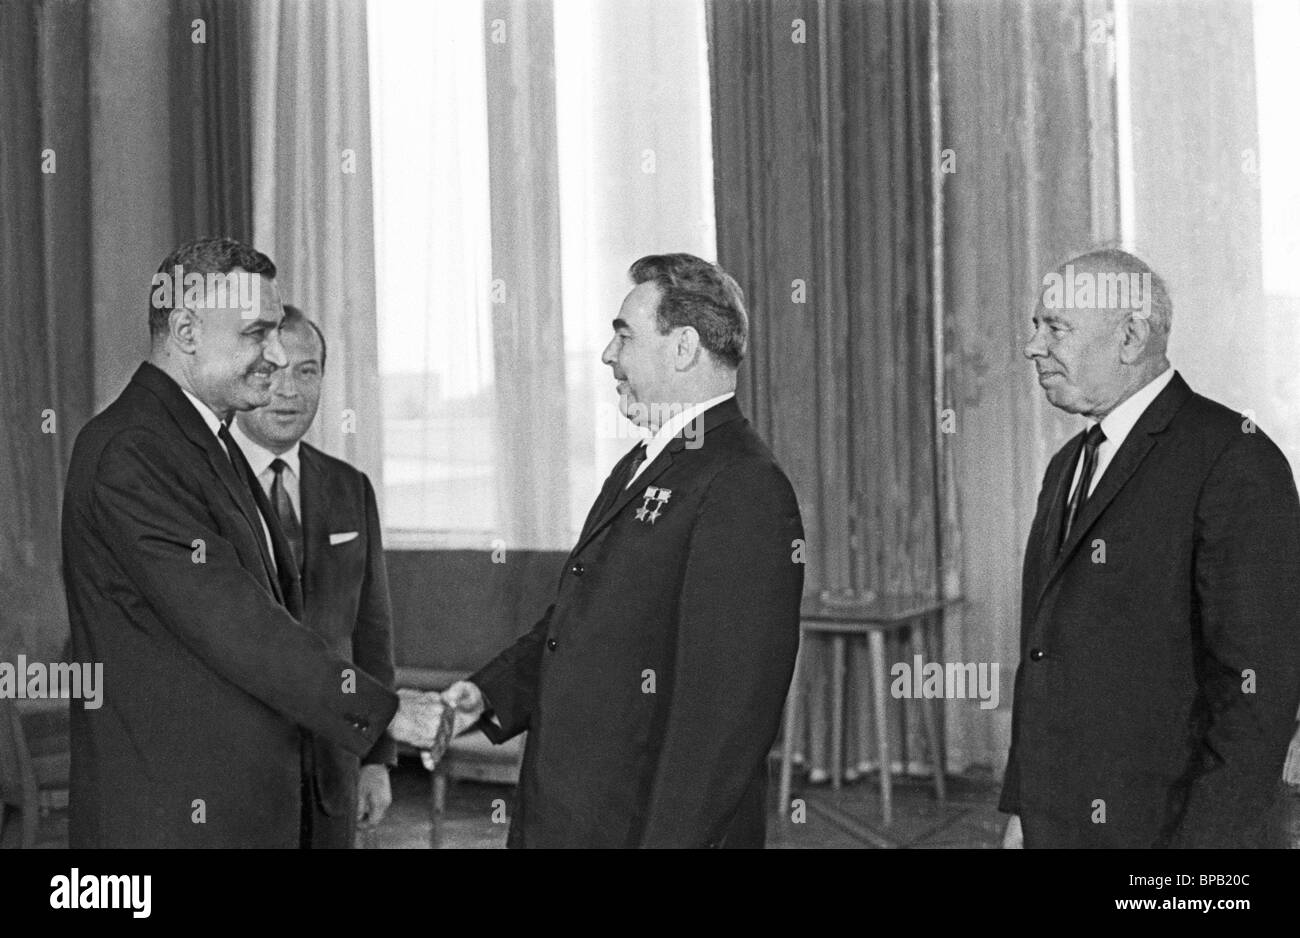 Leonid Brezhnev meets with President of Egypt Gamal Abdel Nasser in Kremlin, 1968 - Stock Image